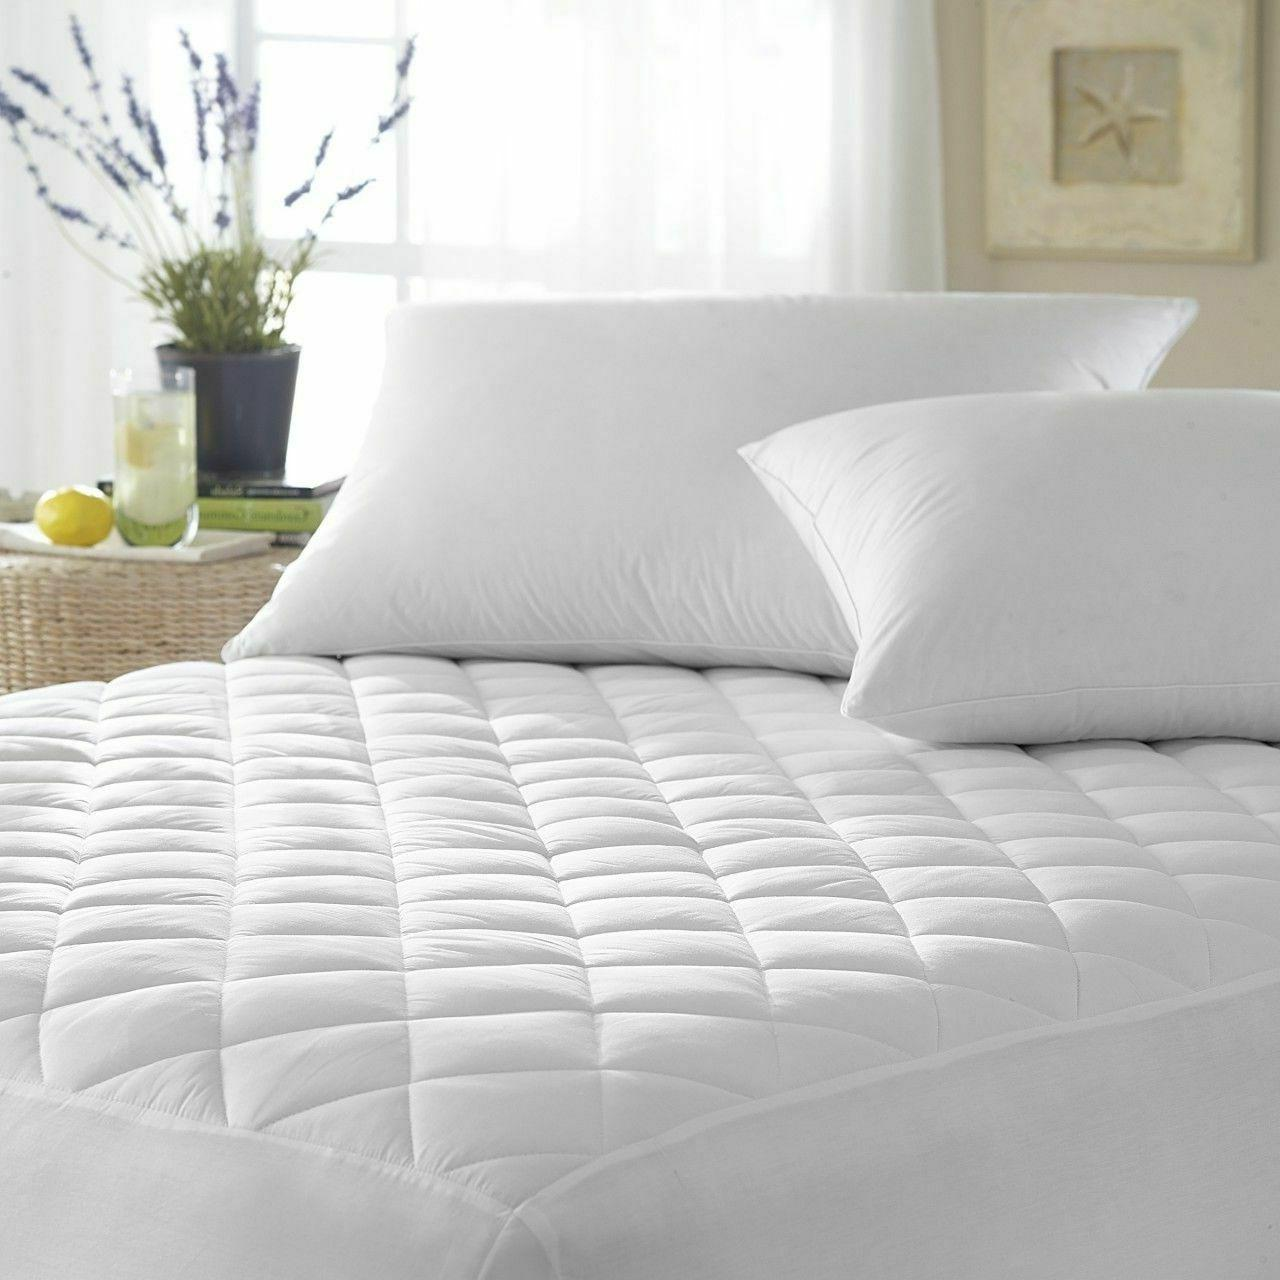 QUILTED MATTRESS PROTECTOR FITTED BED COVER SHEET SINGLE SMA